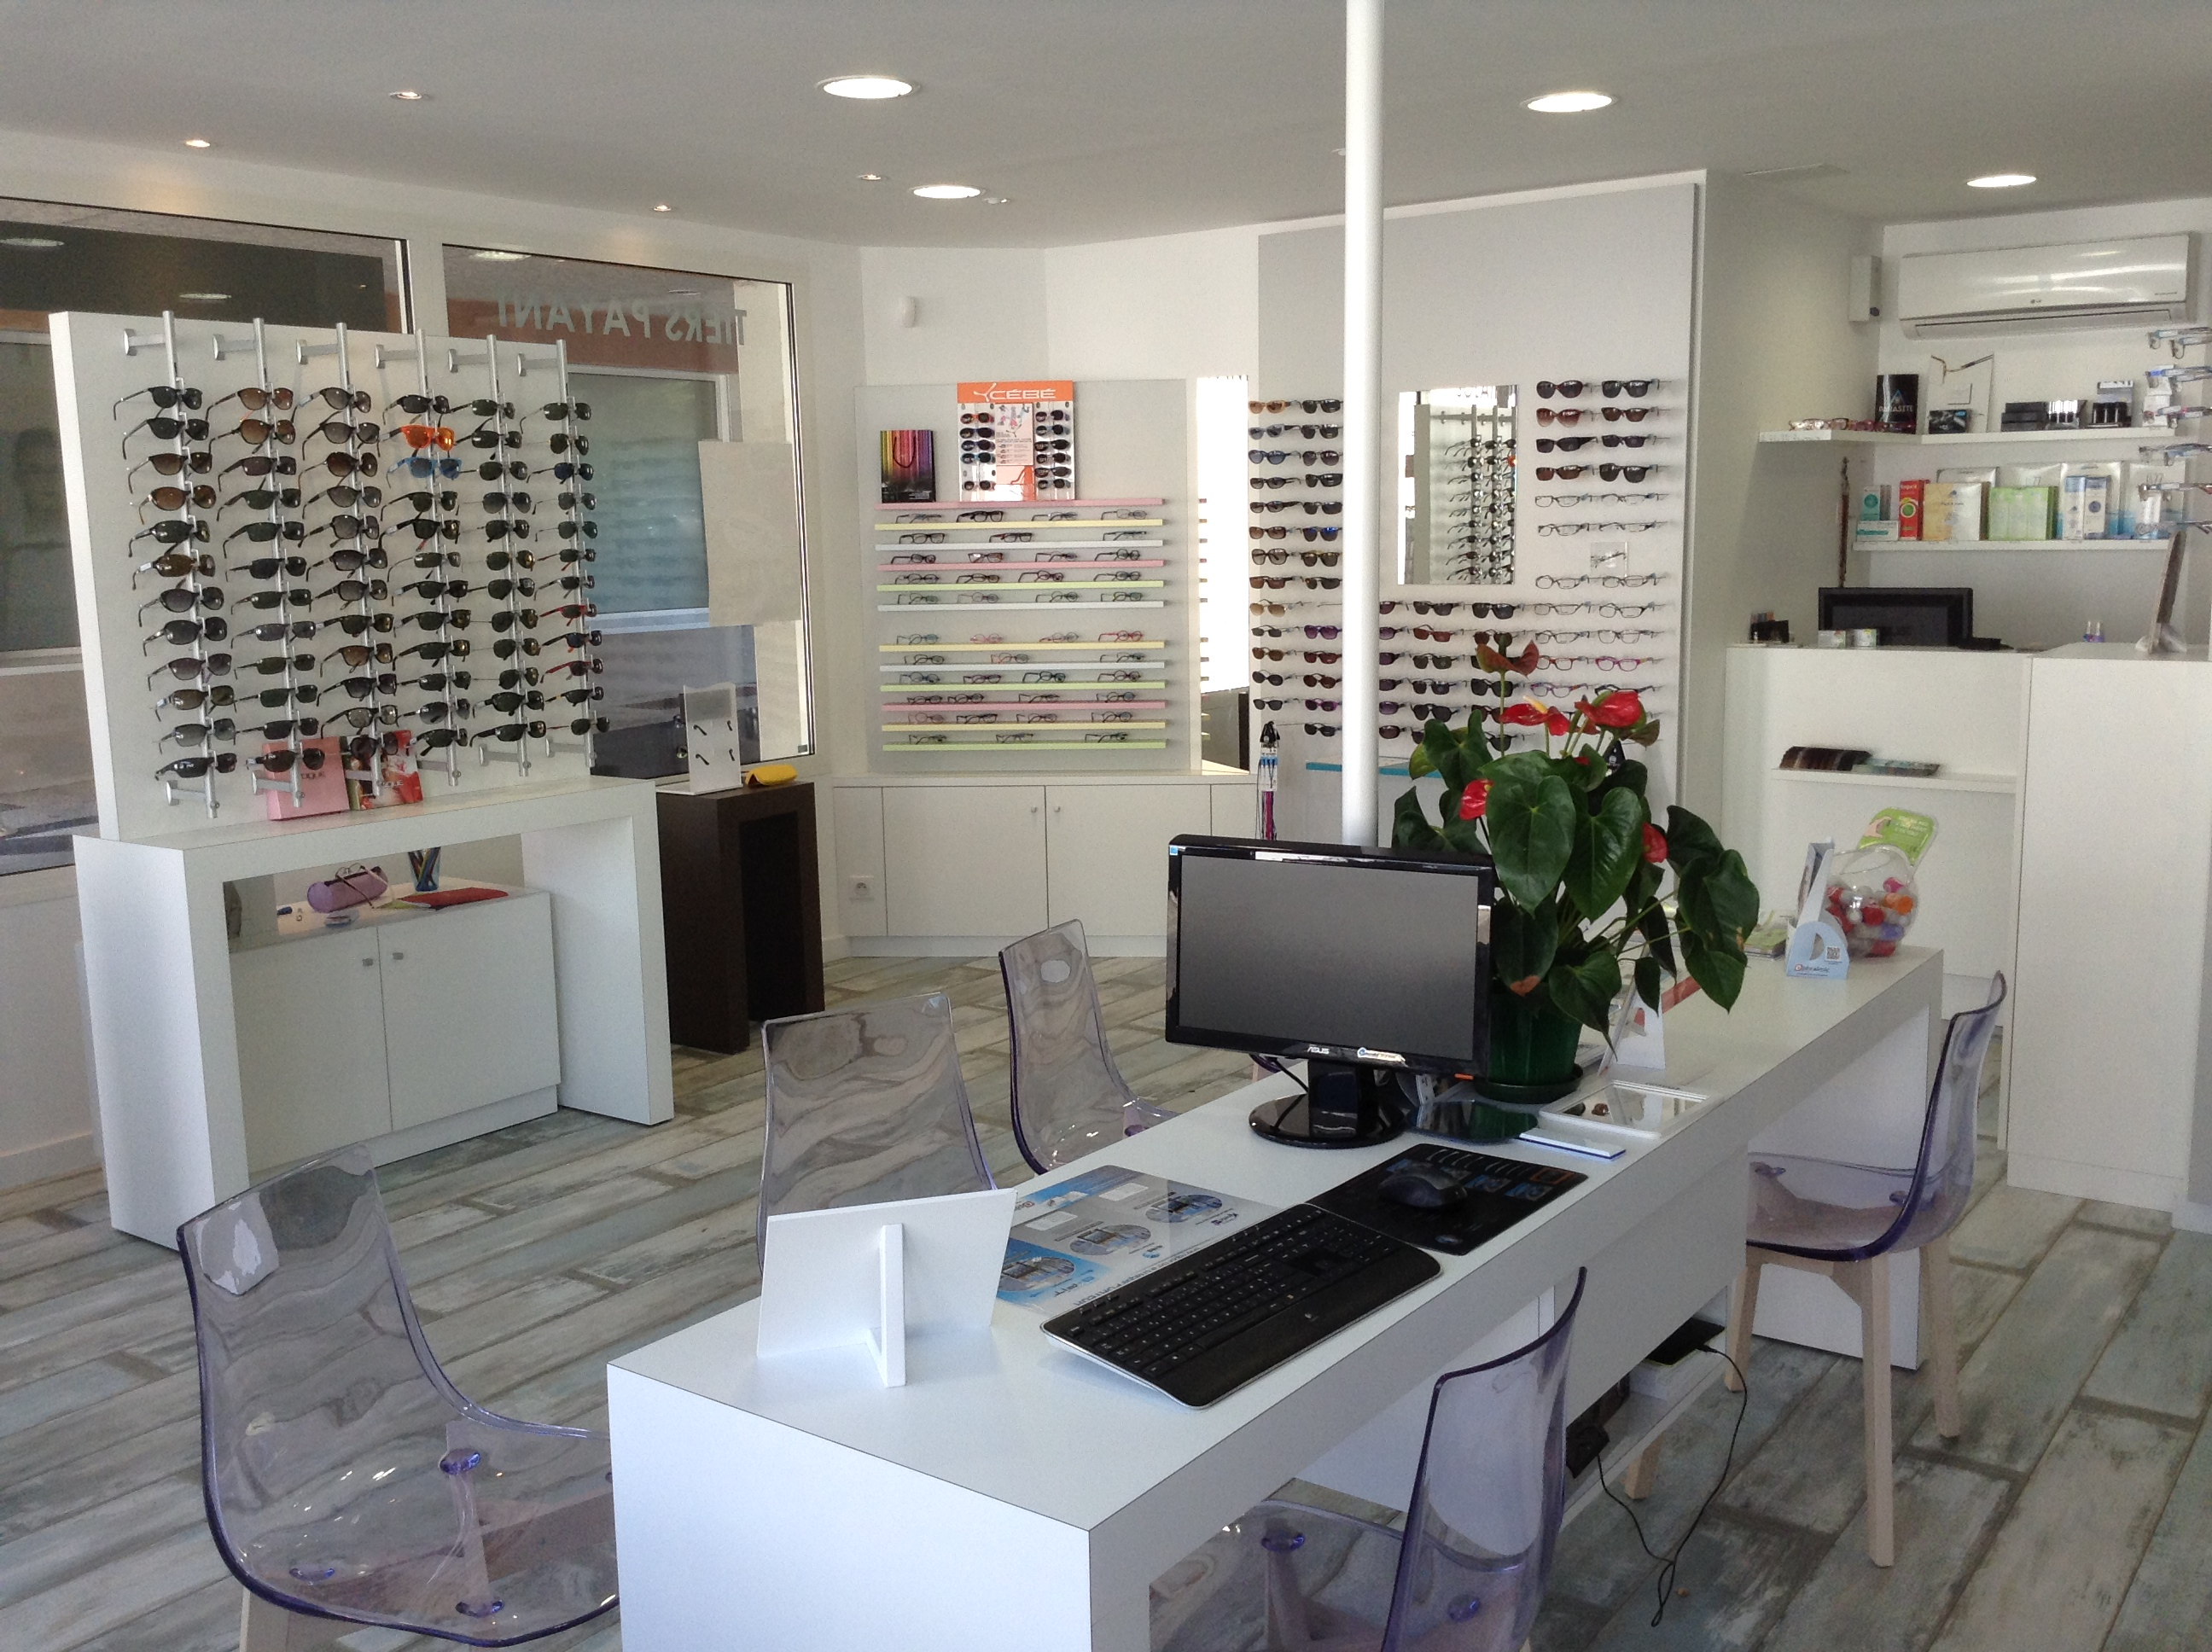 Opticien : OPTIQUE ST MICHEL, 15 Ter RUE DU CHEVECIER, 44730 ST MICHEL CHEF-CHEF